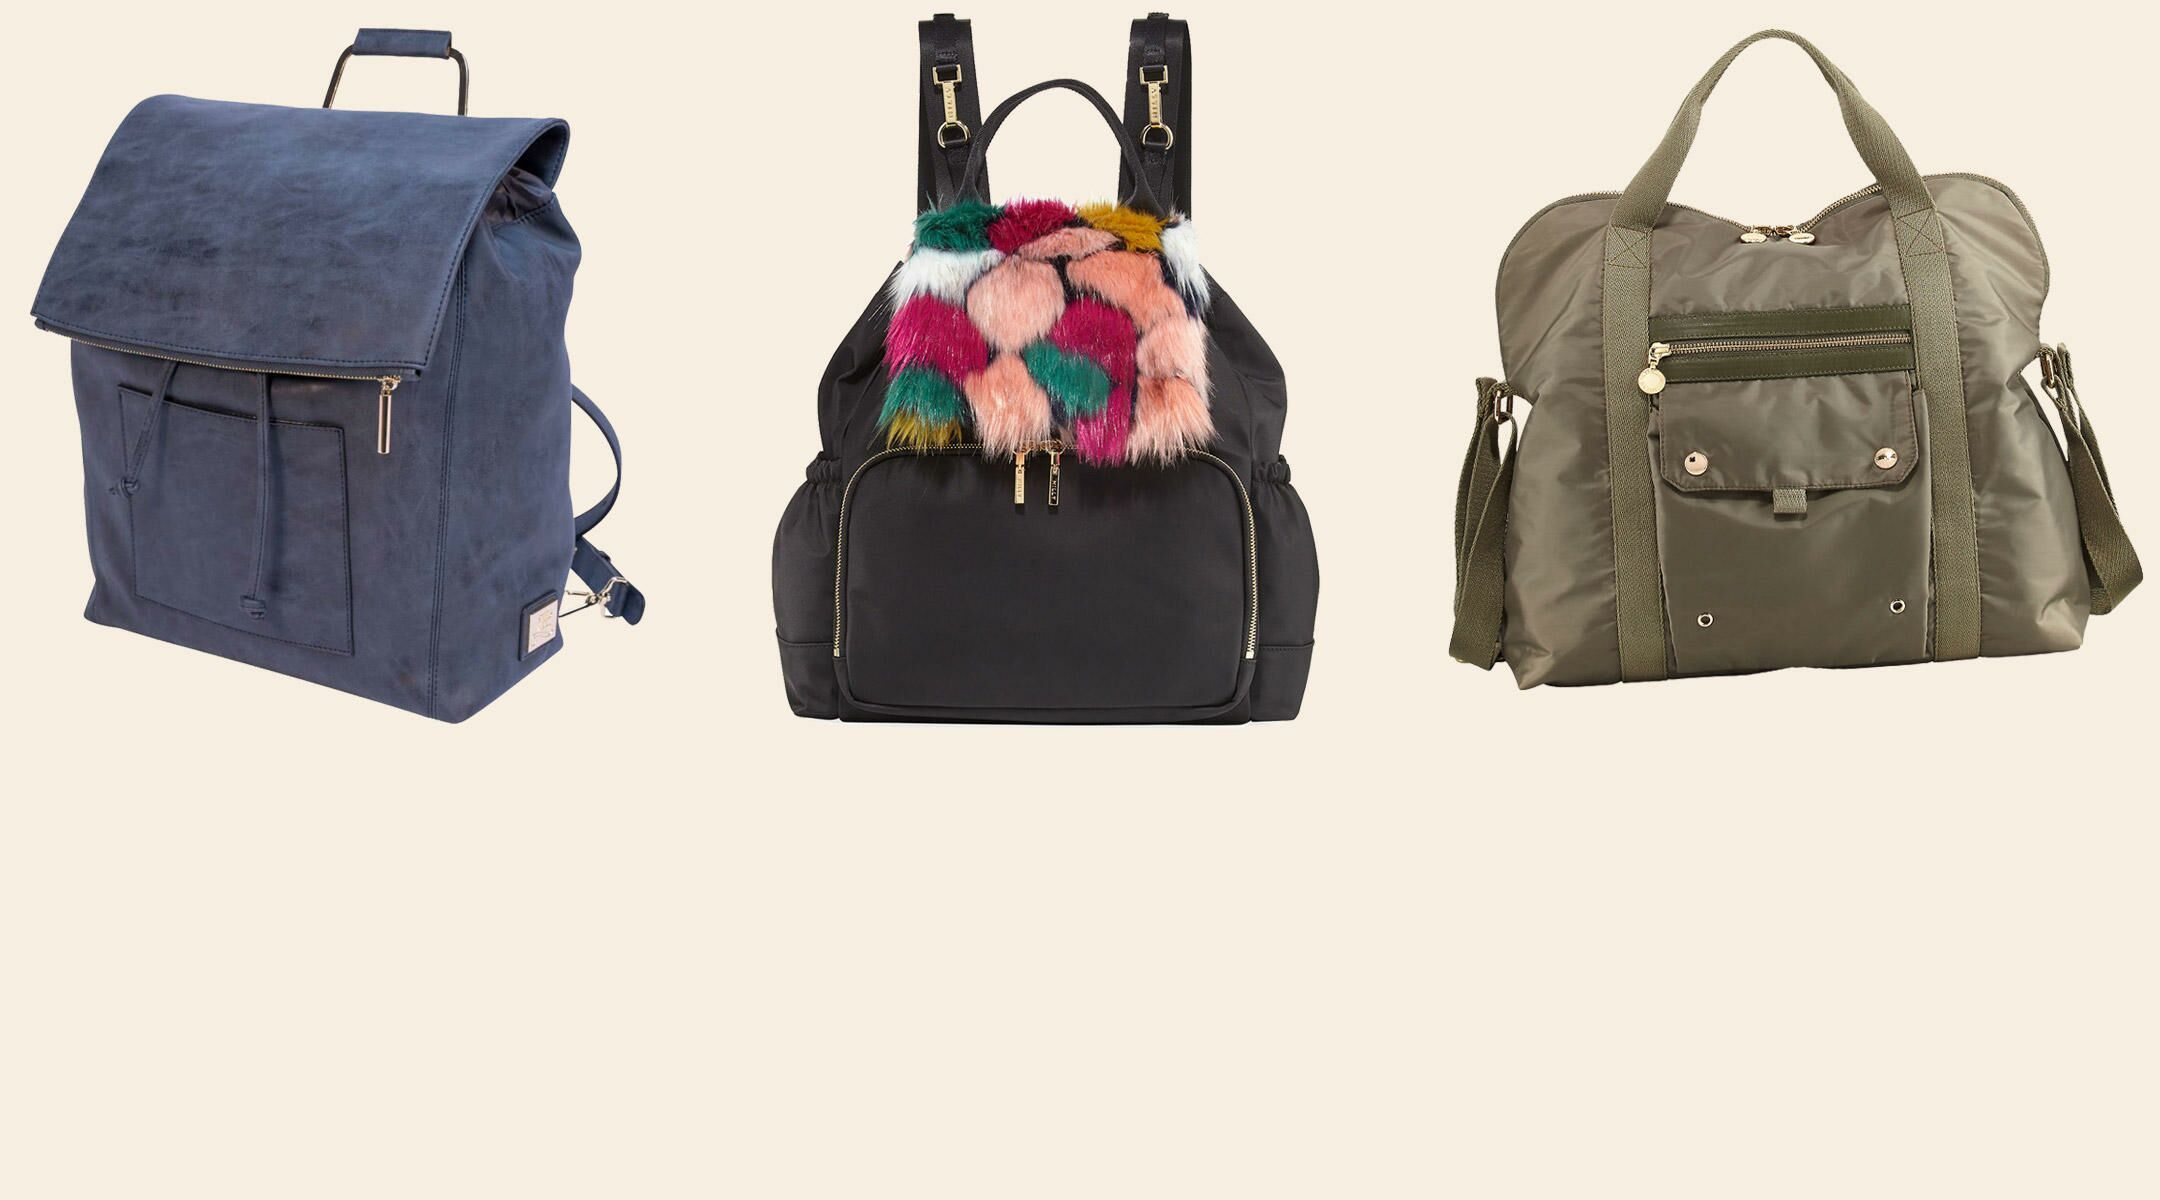 38a878c66d4 15 Best Designer Diaper Bags (and Where to Find Them for Less)